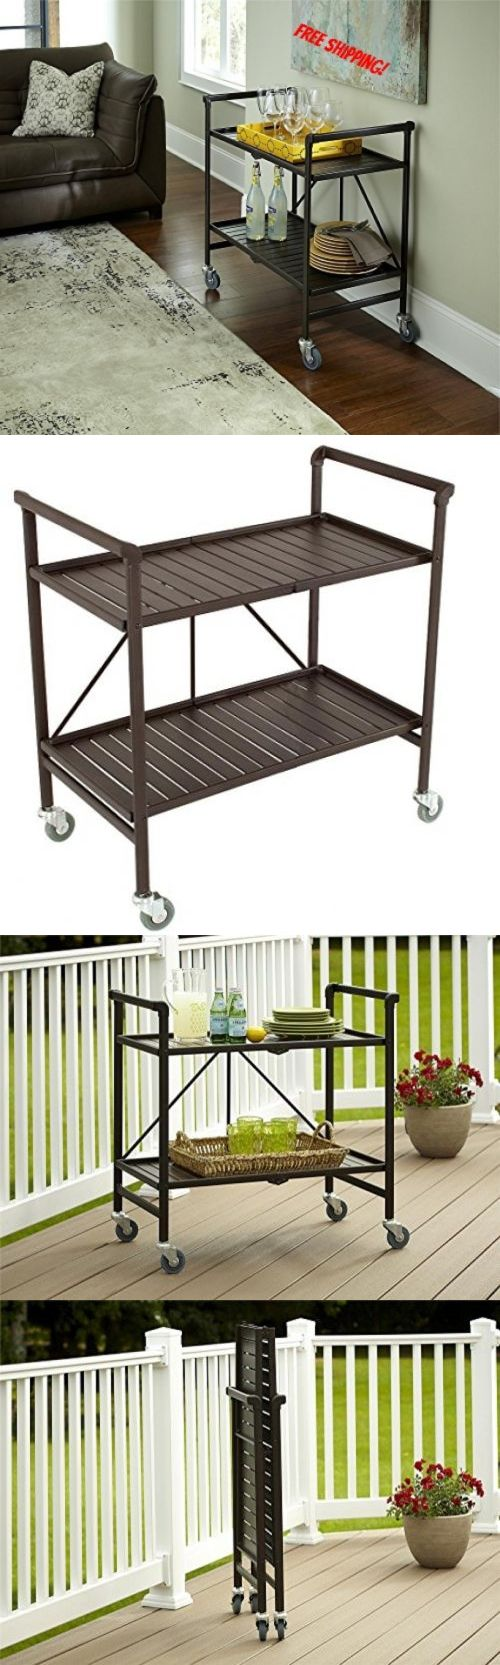 Outdoor buffet table serving cart as well century modern console table - Bar Carts And Serving Carts 183320 Rolling Serving Cart Brown Portable Folding Kitchen Bar Beverage